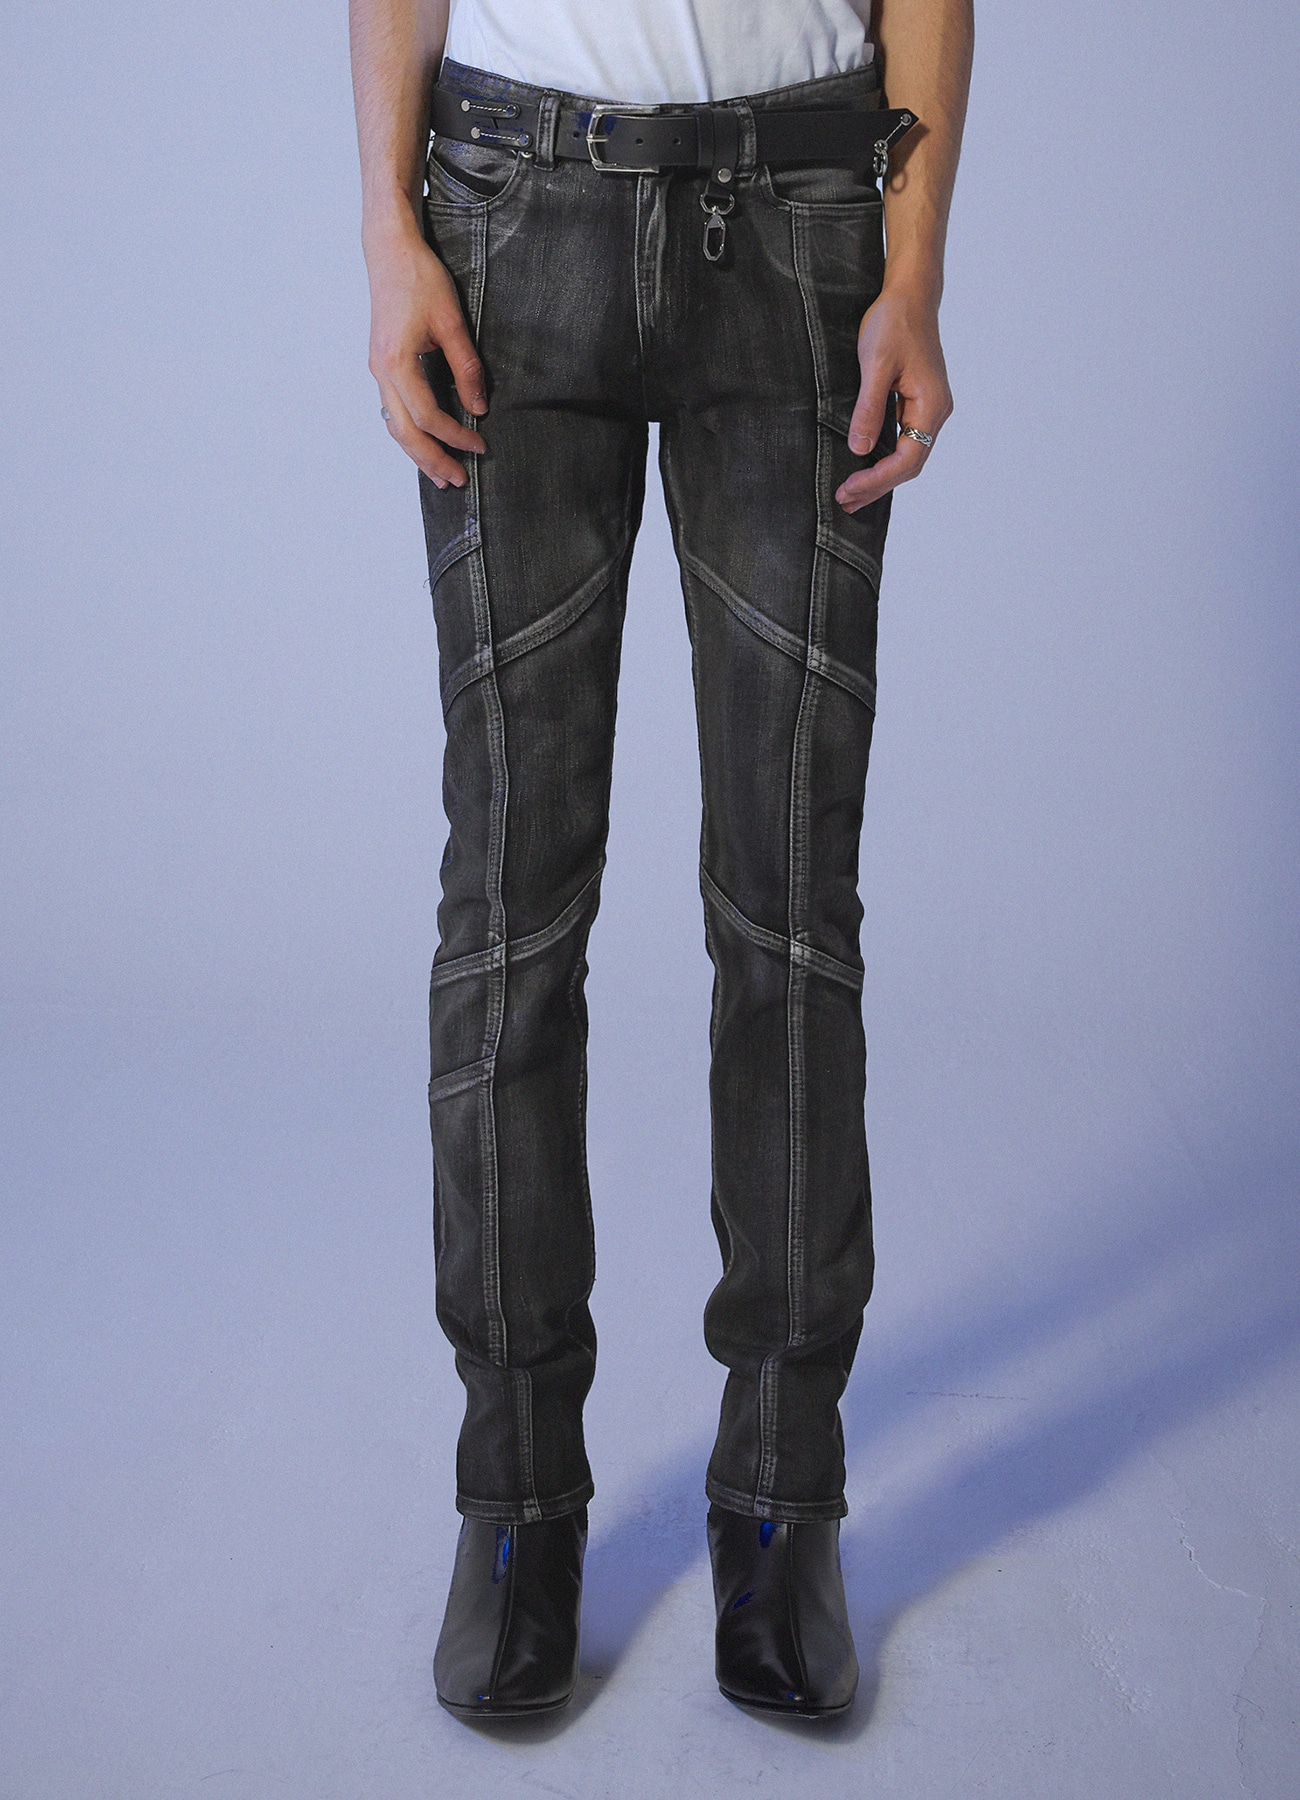 Foggy Dew Biker jeans - Black